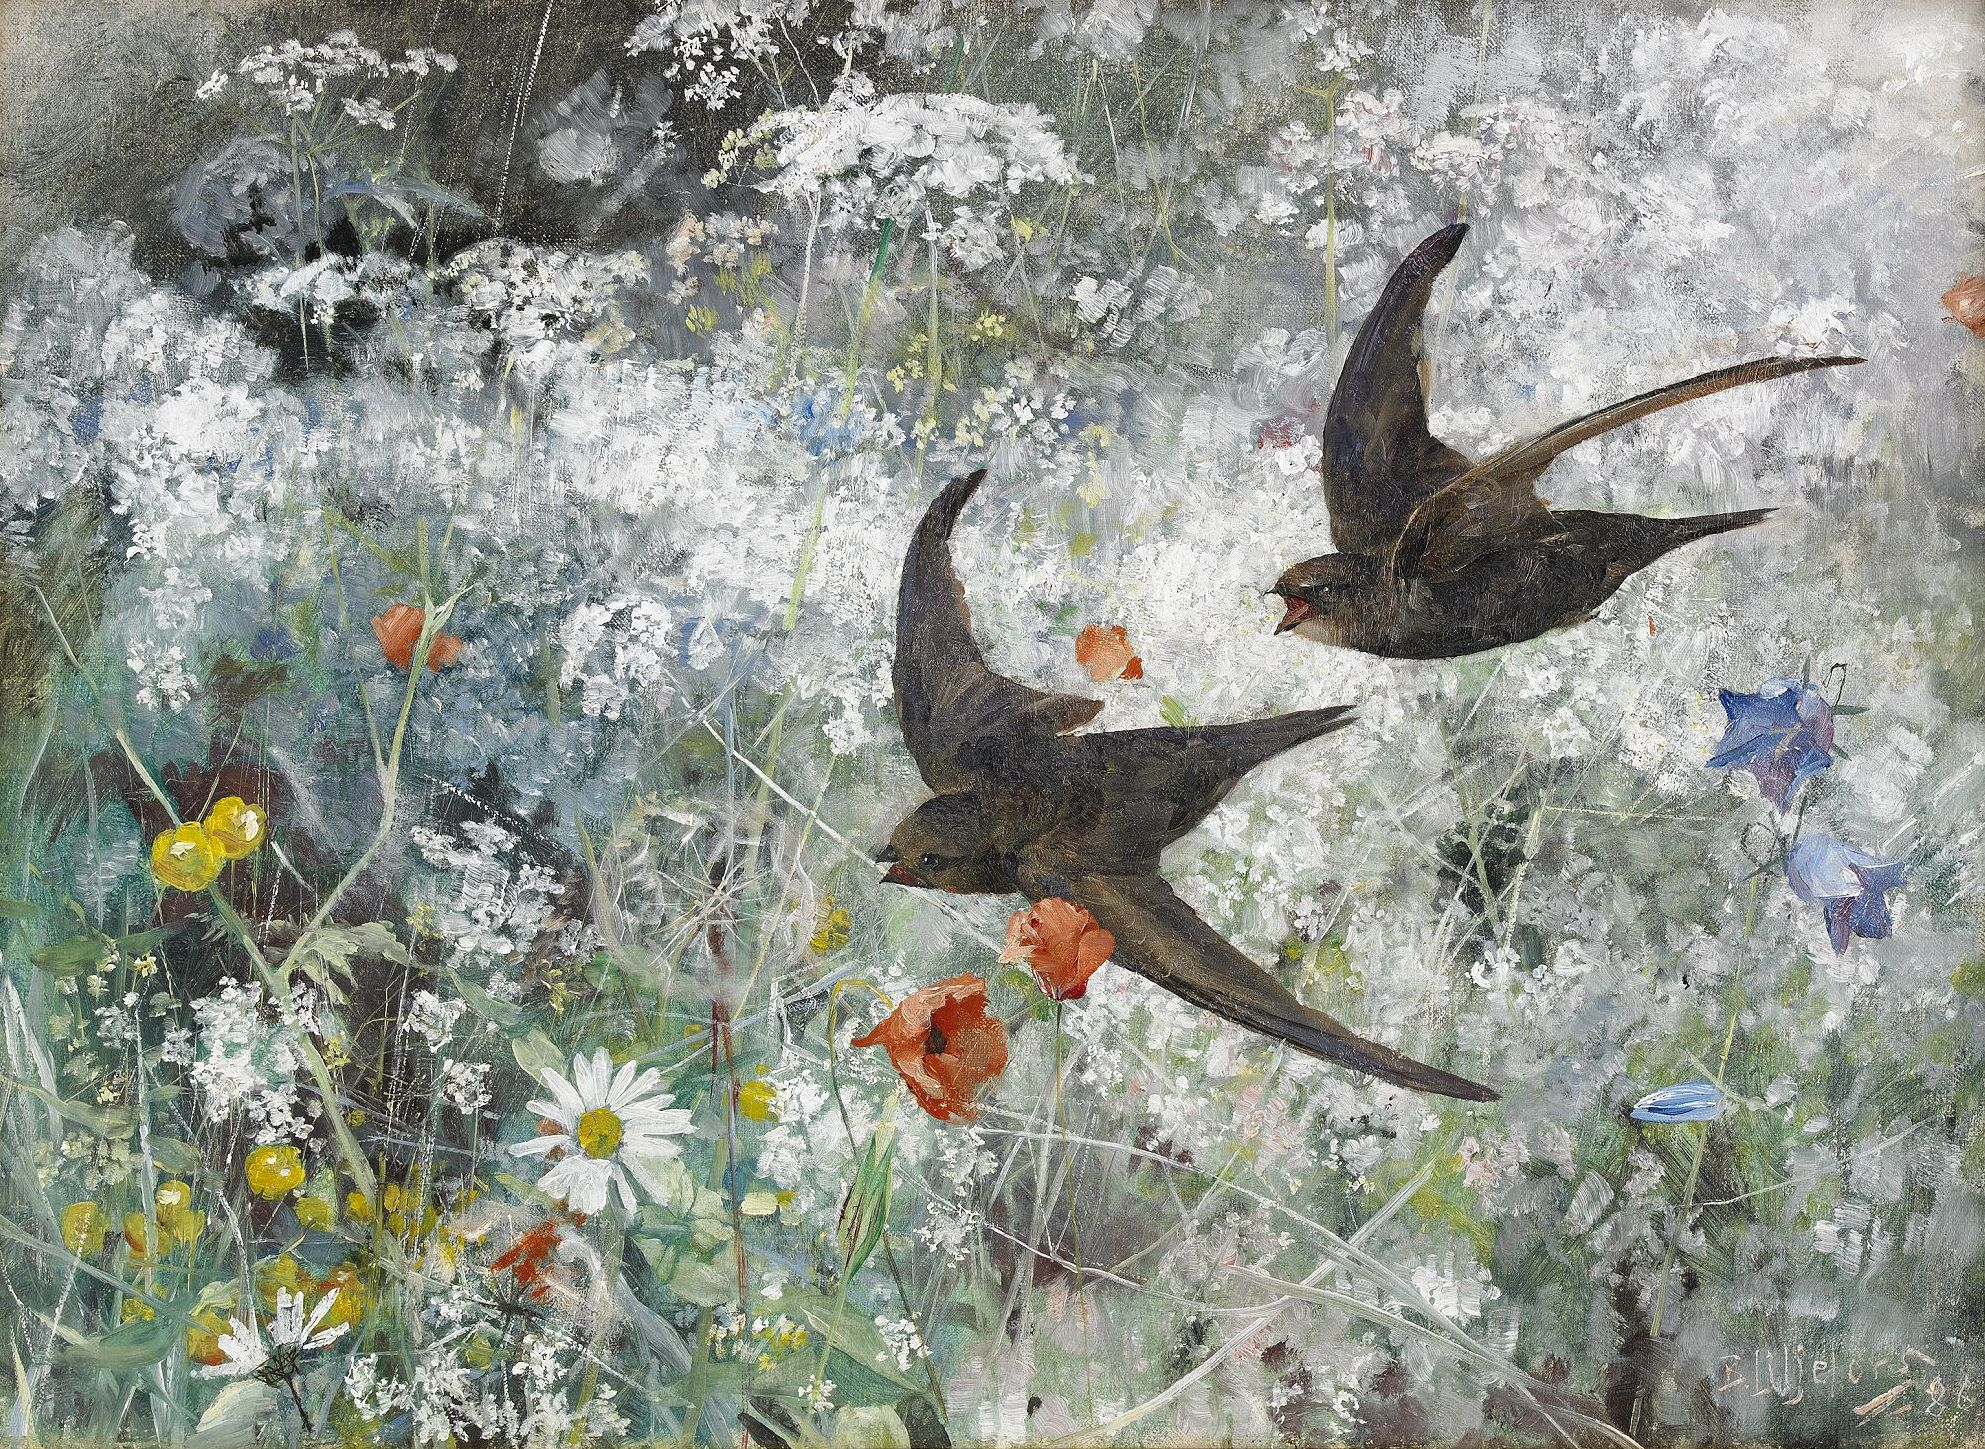 File:Bruno Liljefors - Common Swifts 1886.jpg - Wikimedia Commons